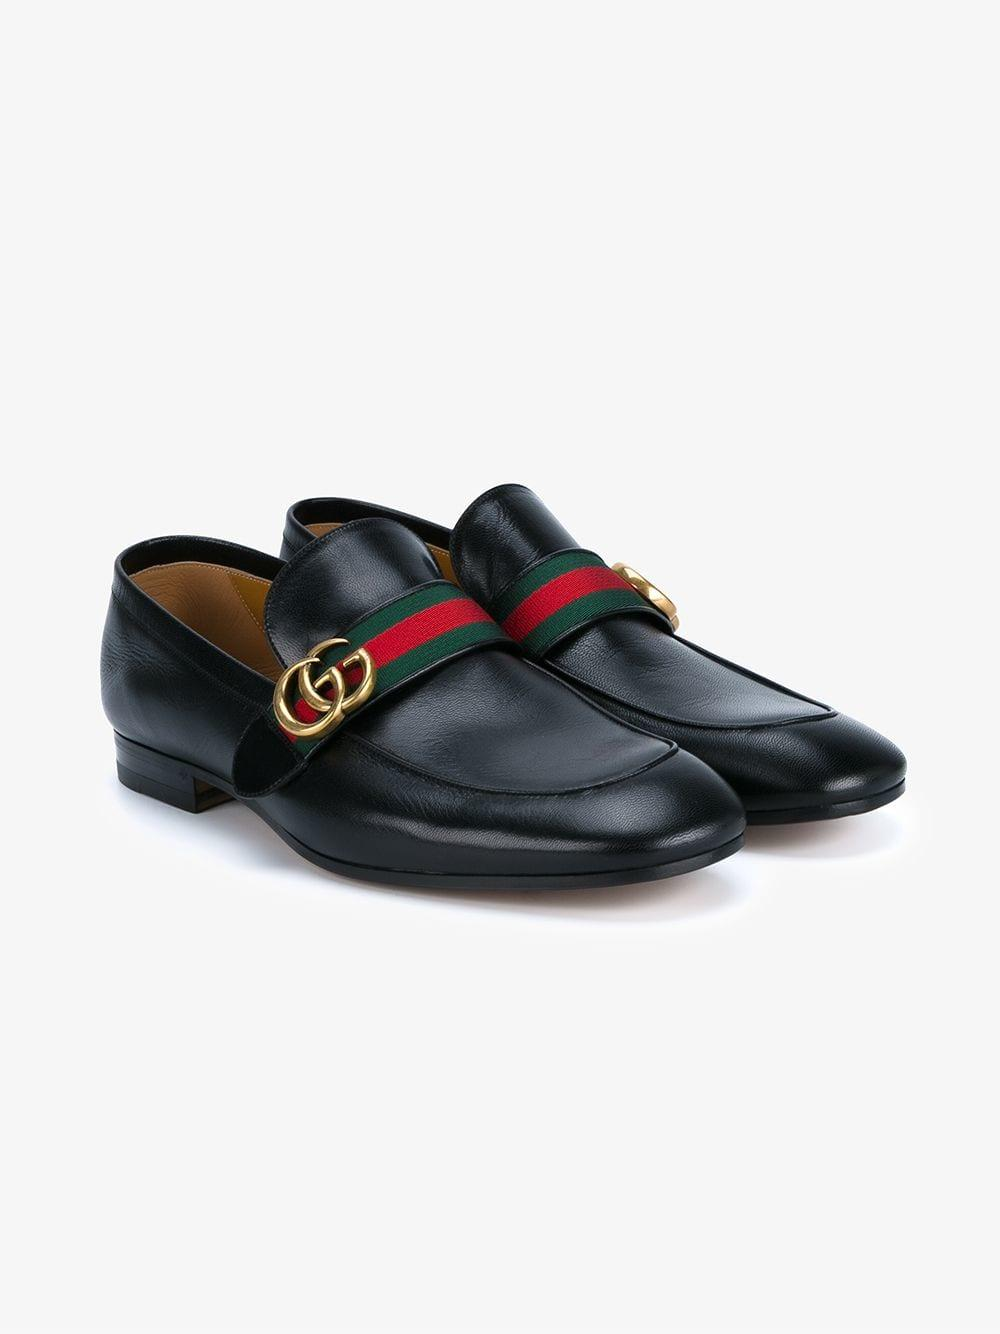 3384613755c Lyst - Gucci Web Gg Loafers in Black for Men - Save 5%